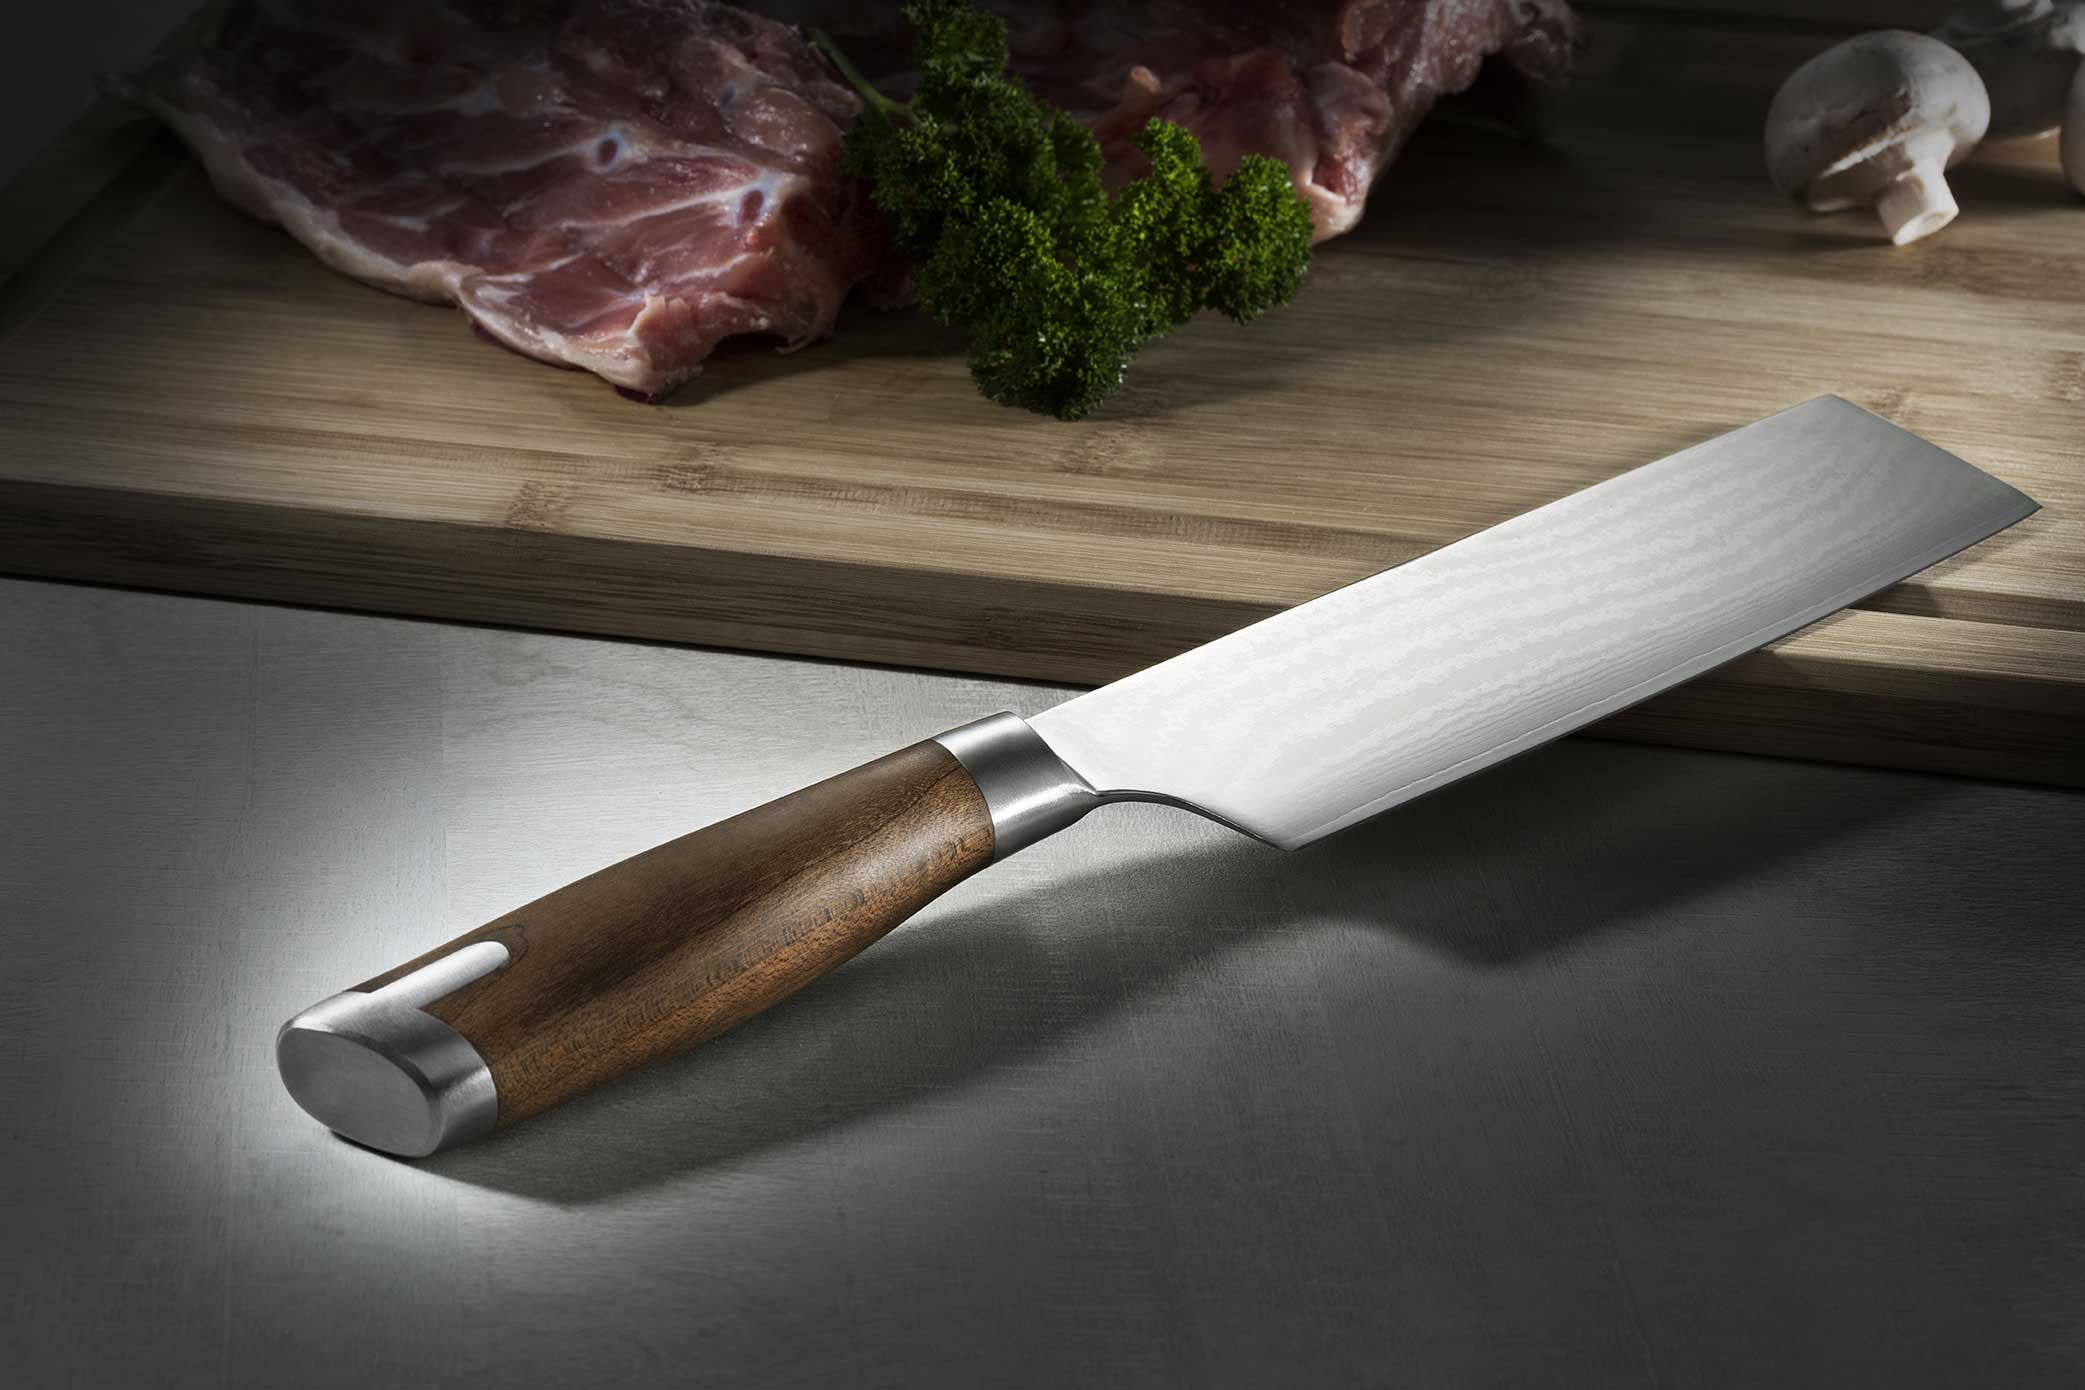 Japanese kitchen cleaver